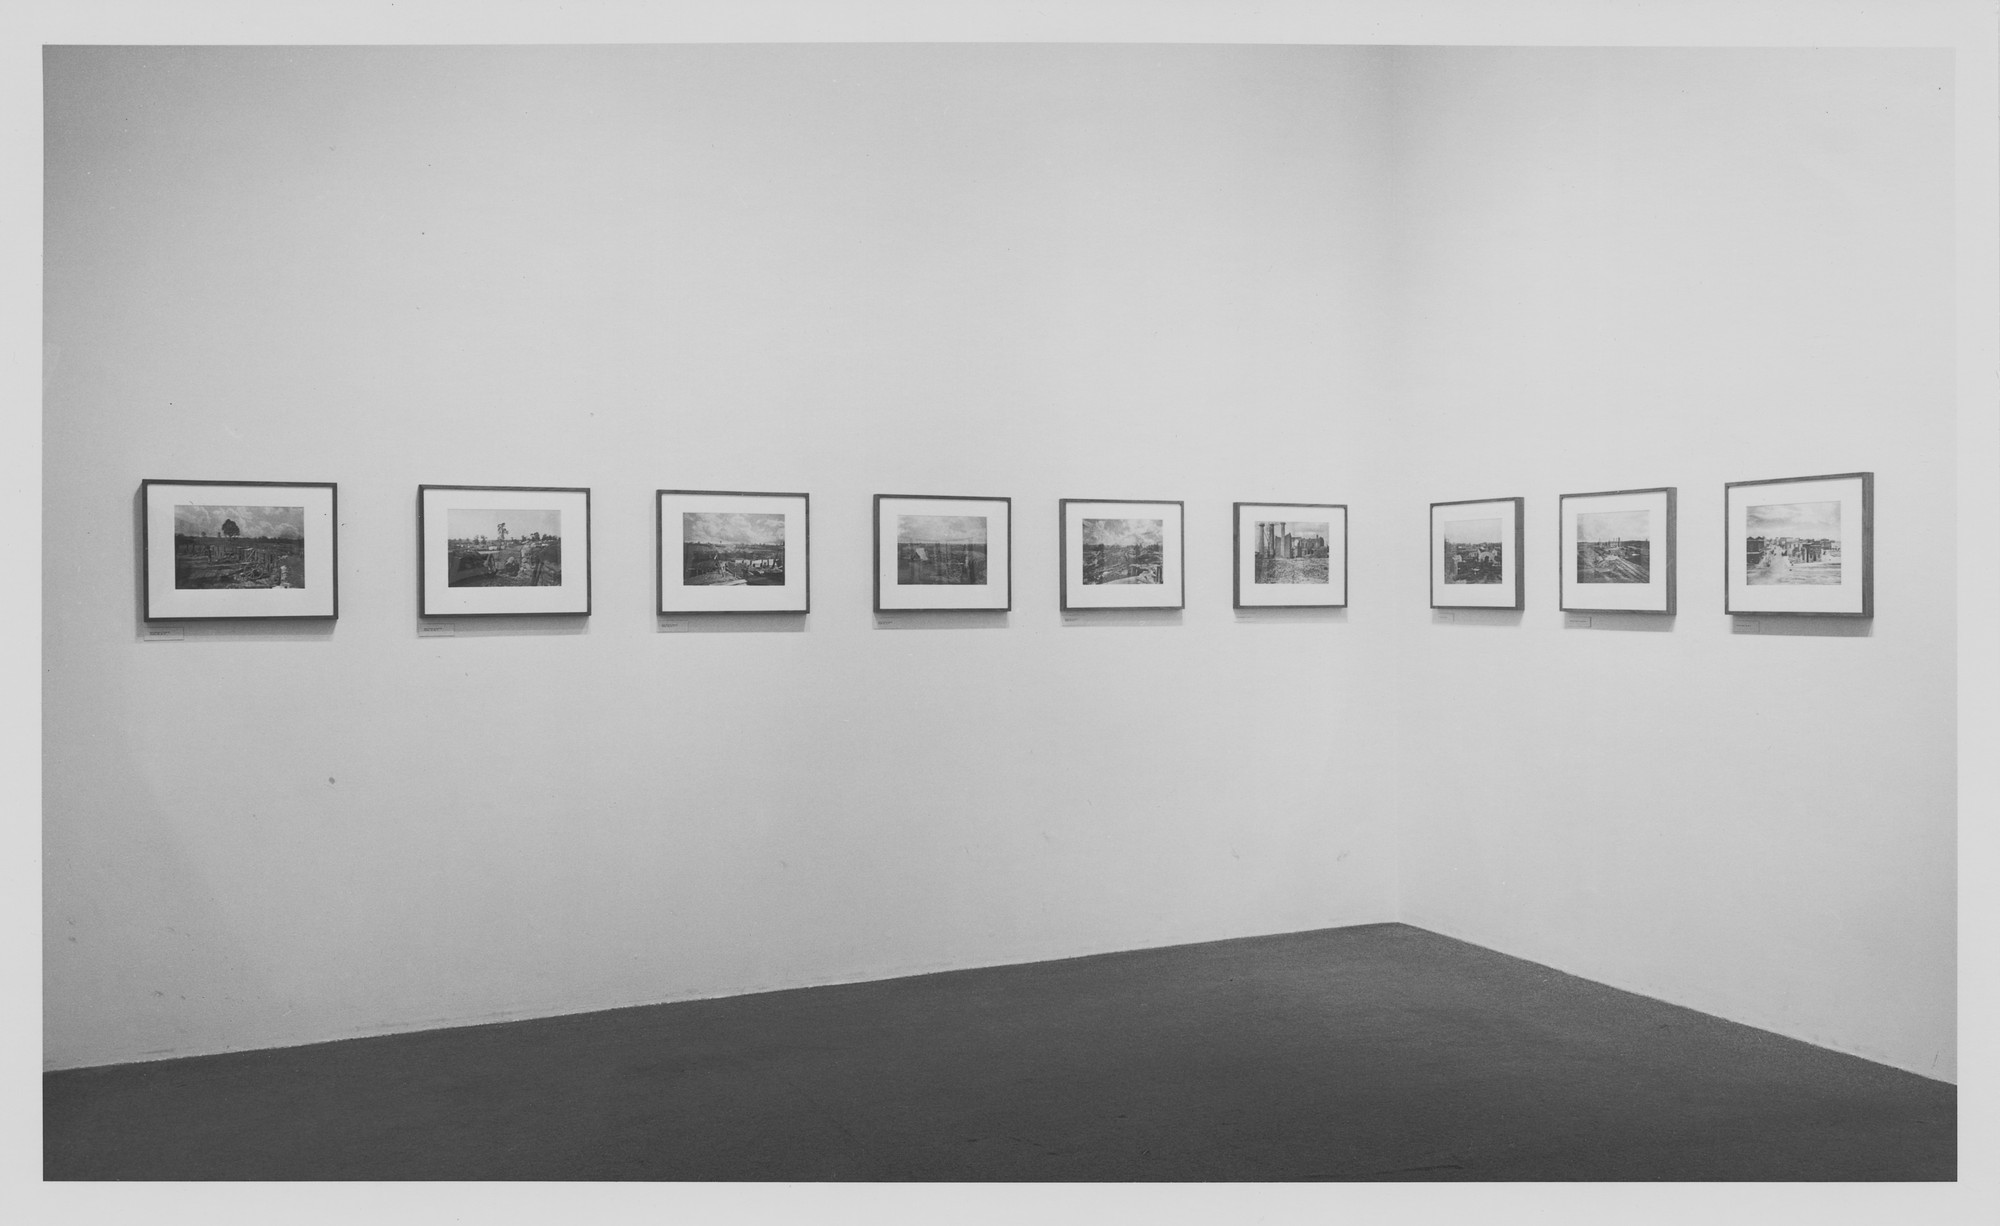 "Installation view of the exhibition, ""Sherman's Campaign:  Photographs by George N. Barnard."" January 27, 1970–April 13, 1970. Photographic Archive. The Museum of Modern Art Archives, New York. IN918.1. Photograph by James Mathews."